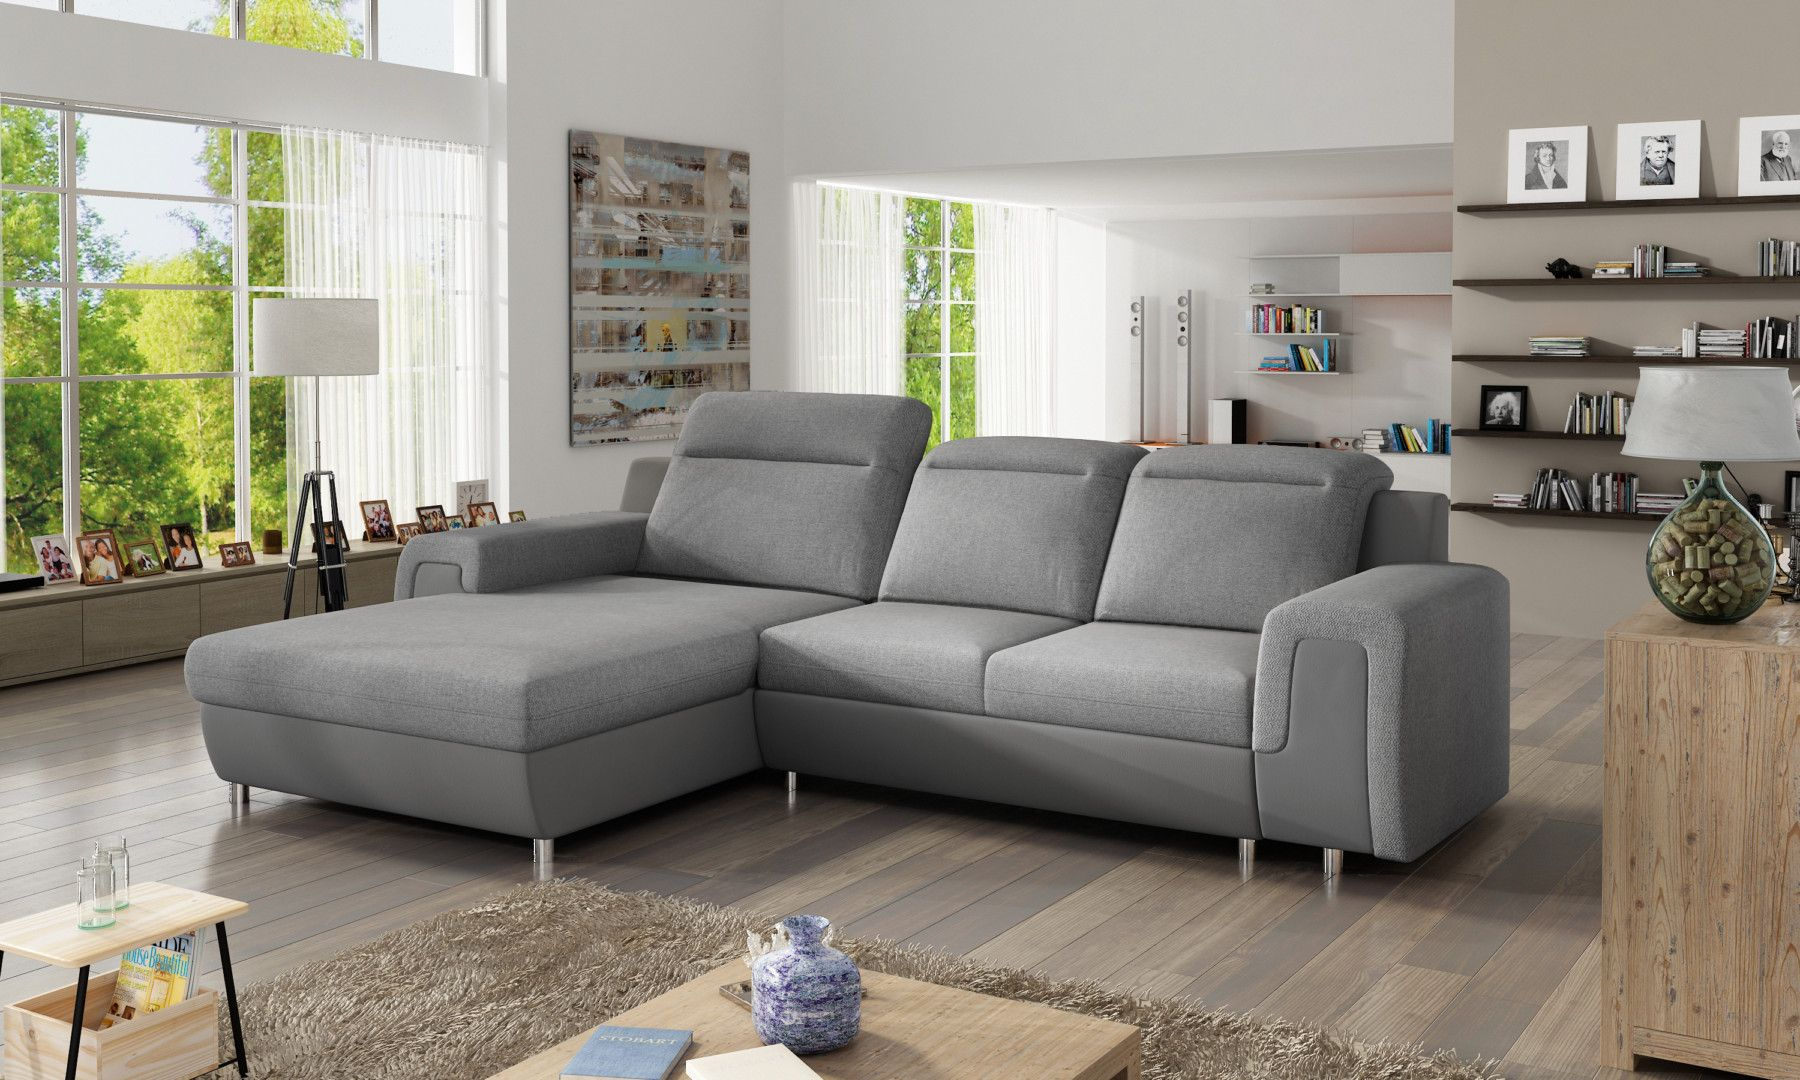 NICOLA MINI is a practical living room sofa and everybody will